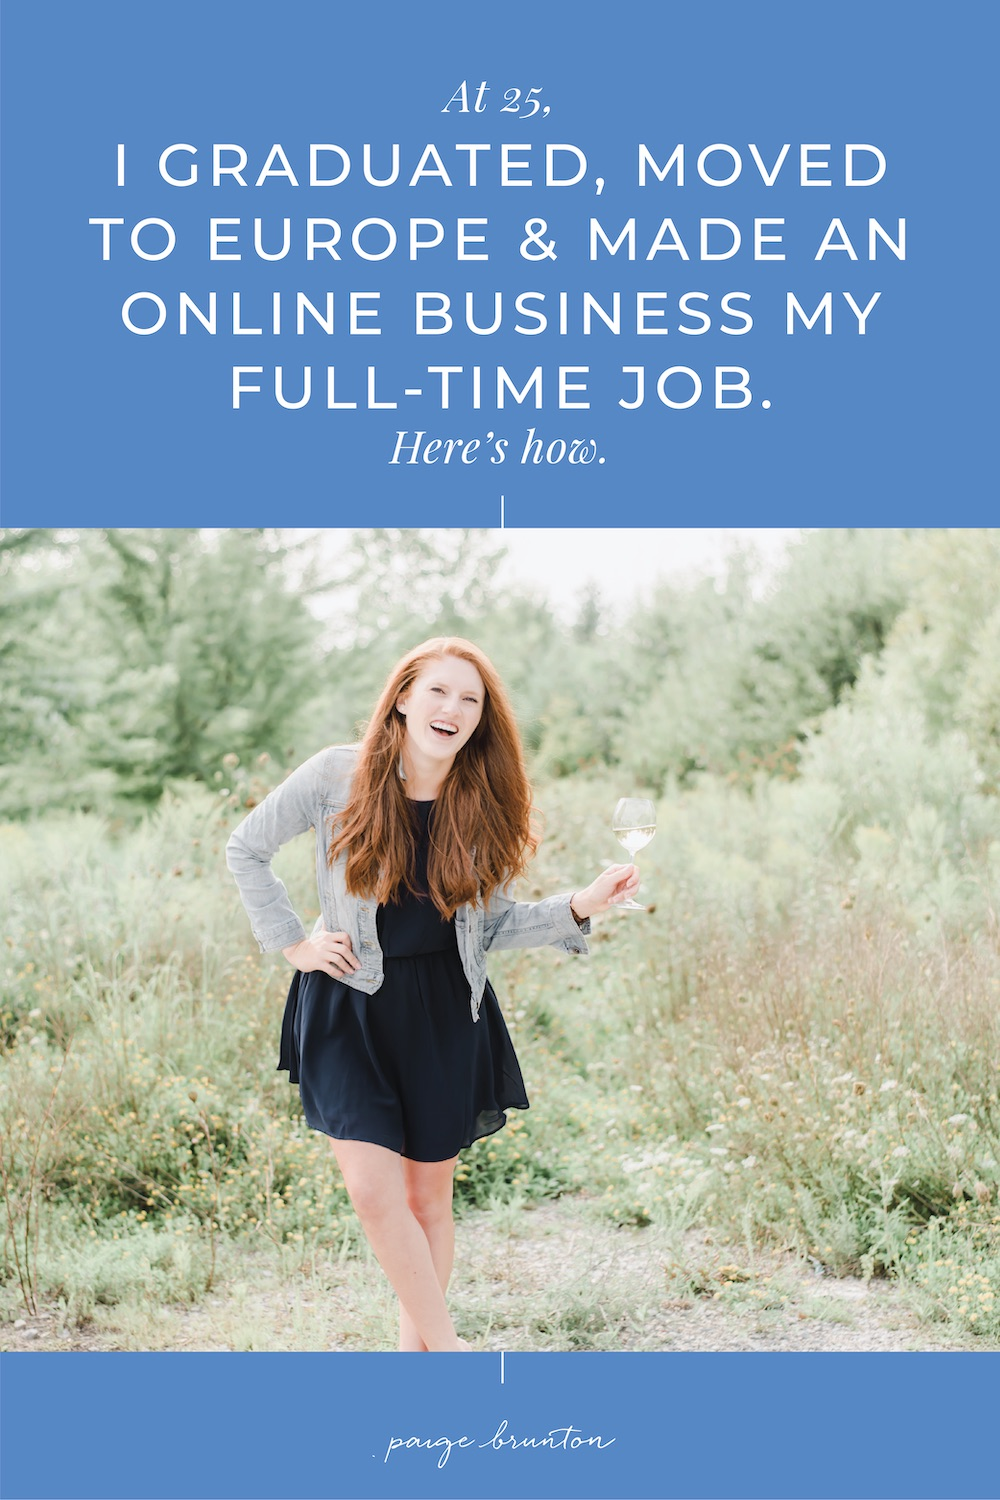 6-At 25, I GRADUATED, MOVED TO EUROPE & MADE AN ONLINE BUSINESS MY FULL-TIME JOB. Here's how.     .jpg